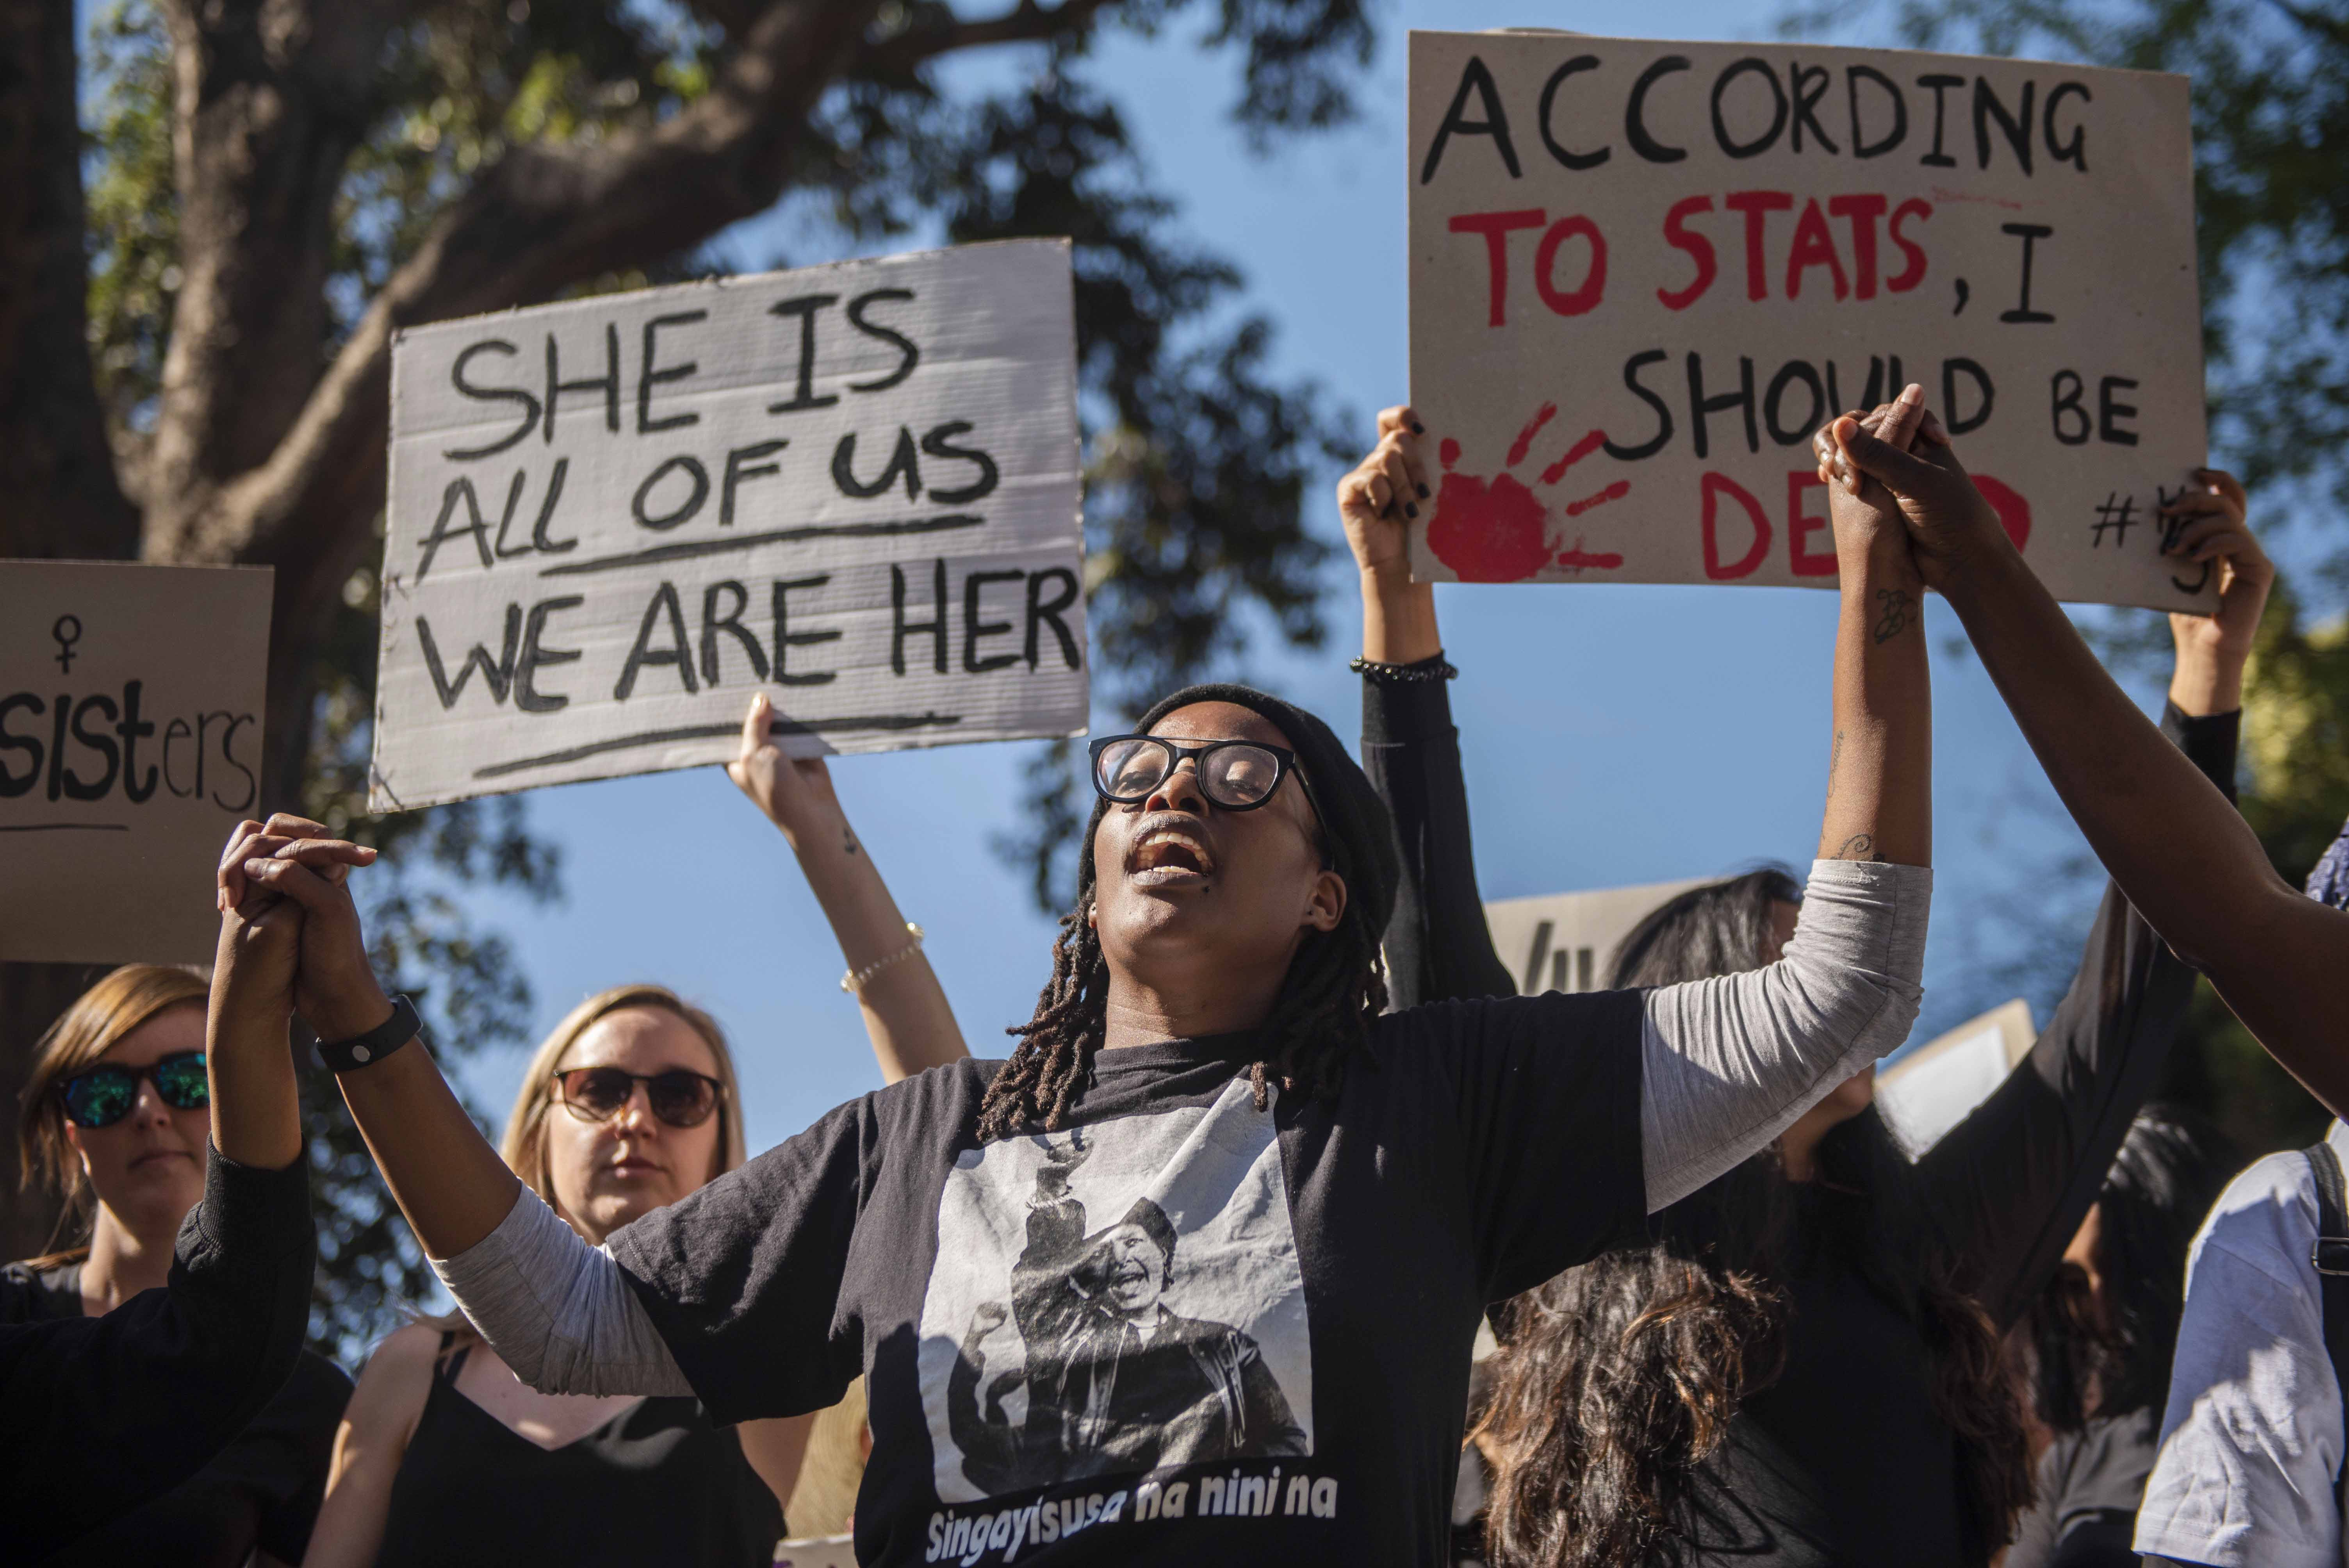 13 September 2019: Protesters at a march at the JSE in Sandton responding to the general scourge of gender-based violence in South Africa. (Photograph by Gallo Images/Alet Pretorius)